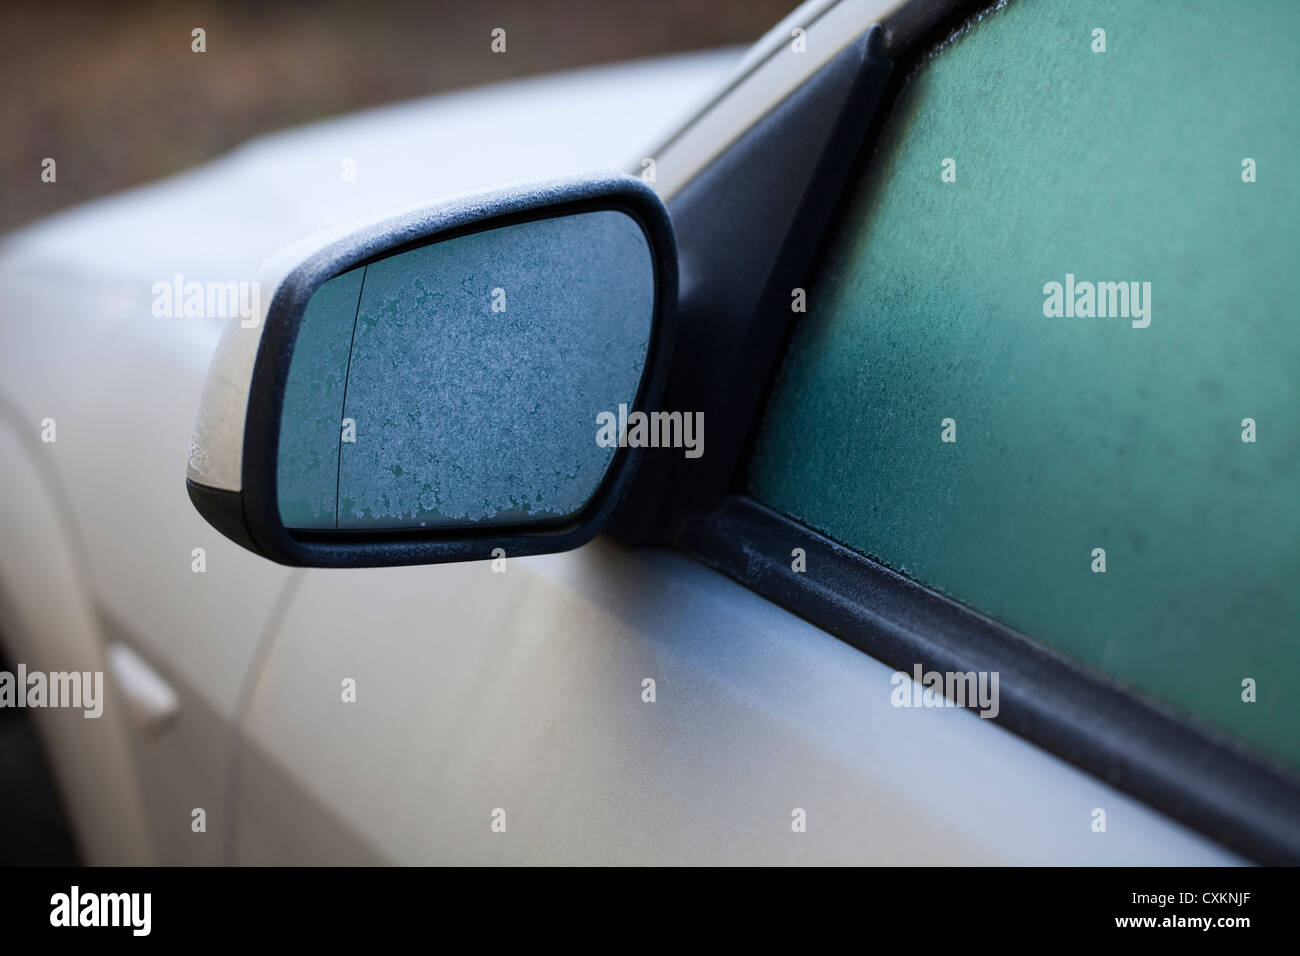 Icy car in winter, ice on the rearview mirror and on the windows - Stock Image